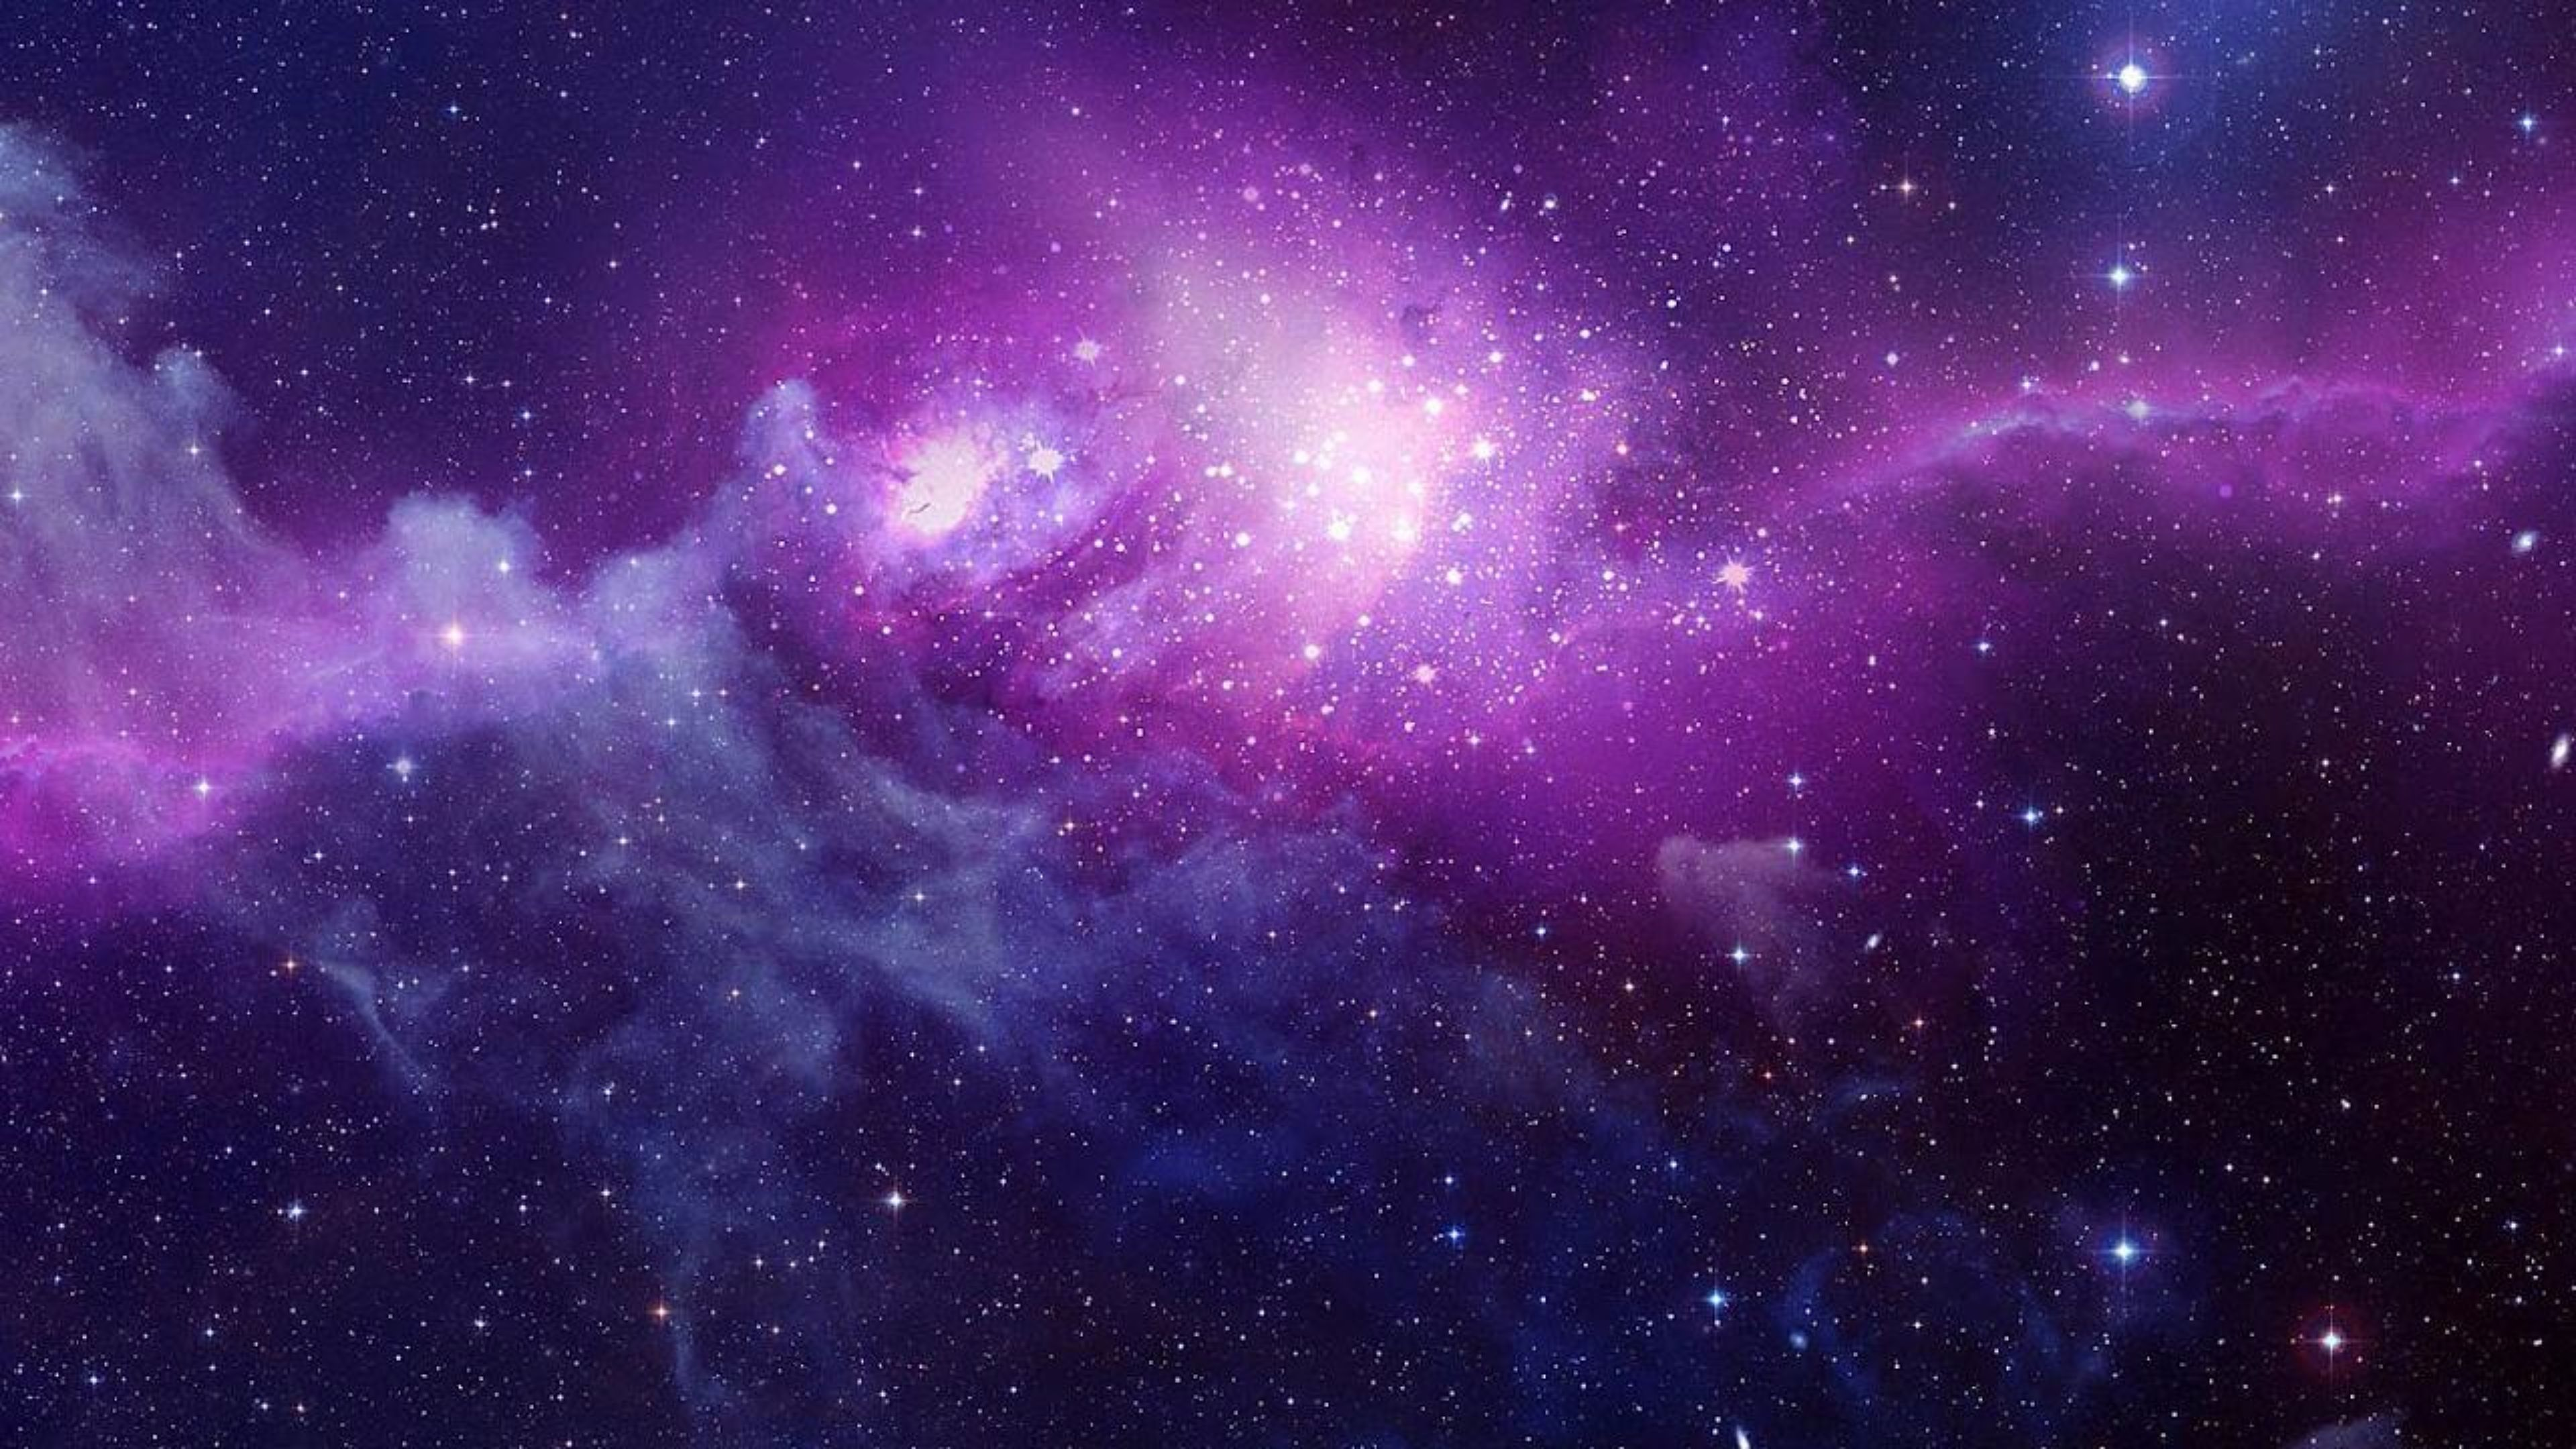 3840x2160 4k space wallpapers are the best here is a few i like